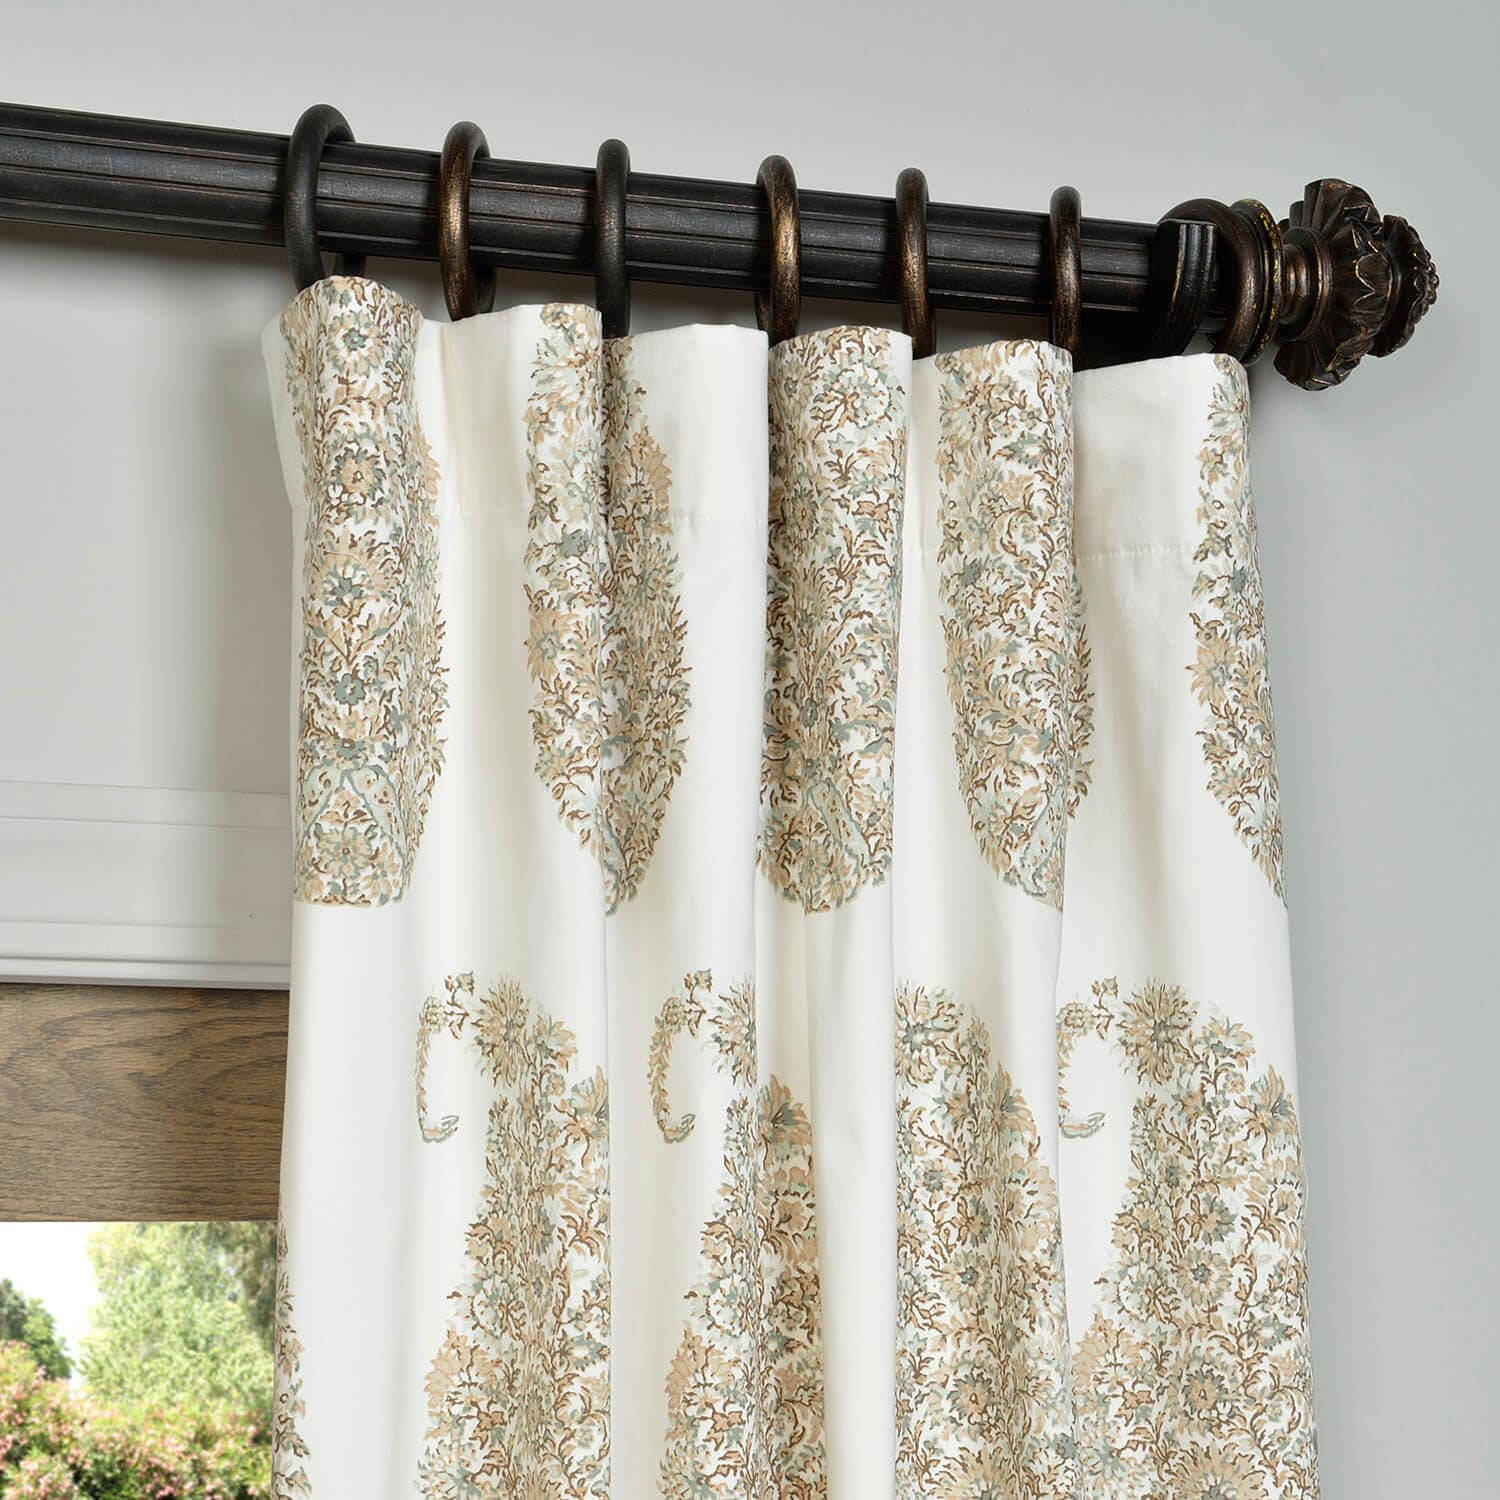 Paisley Park Tan Printed Cotton Twill Curtain